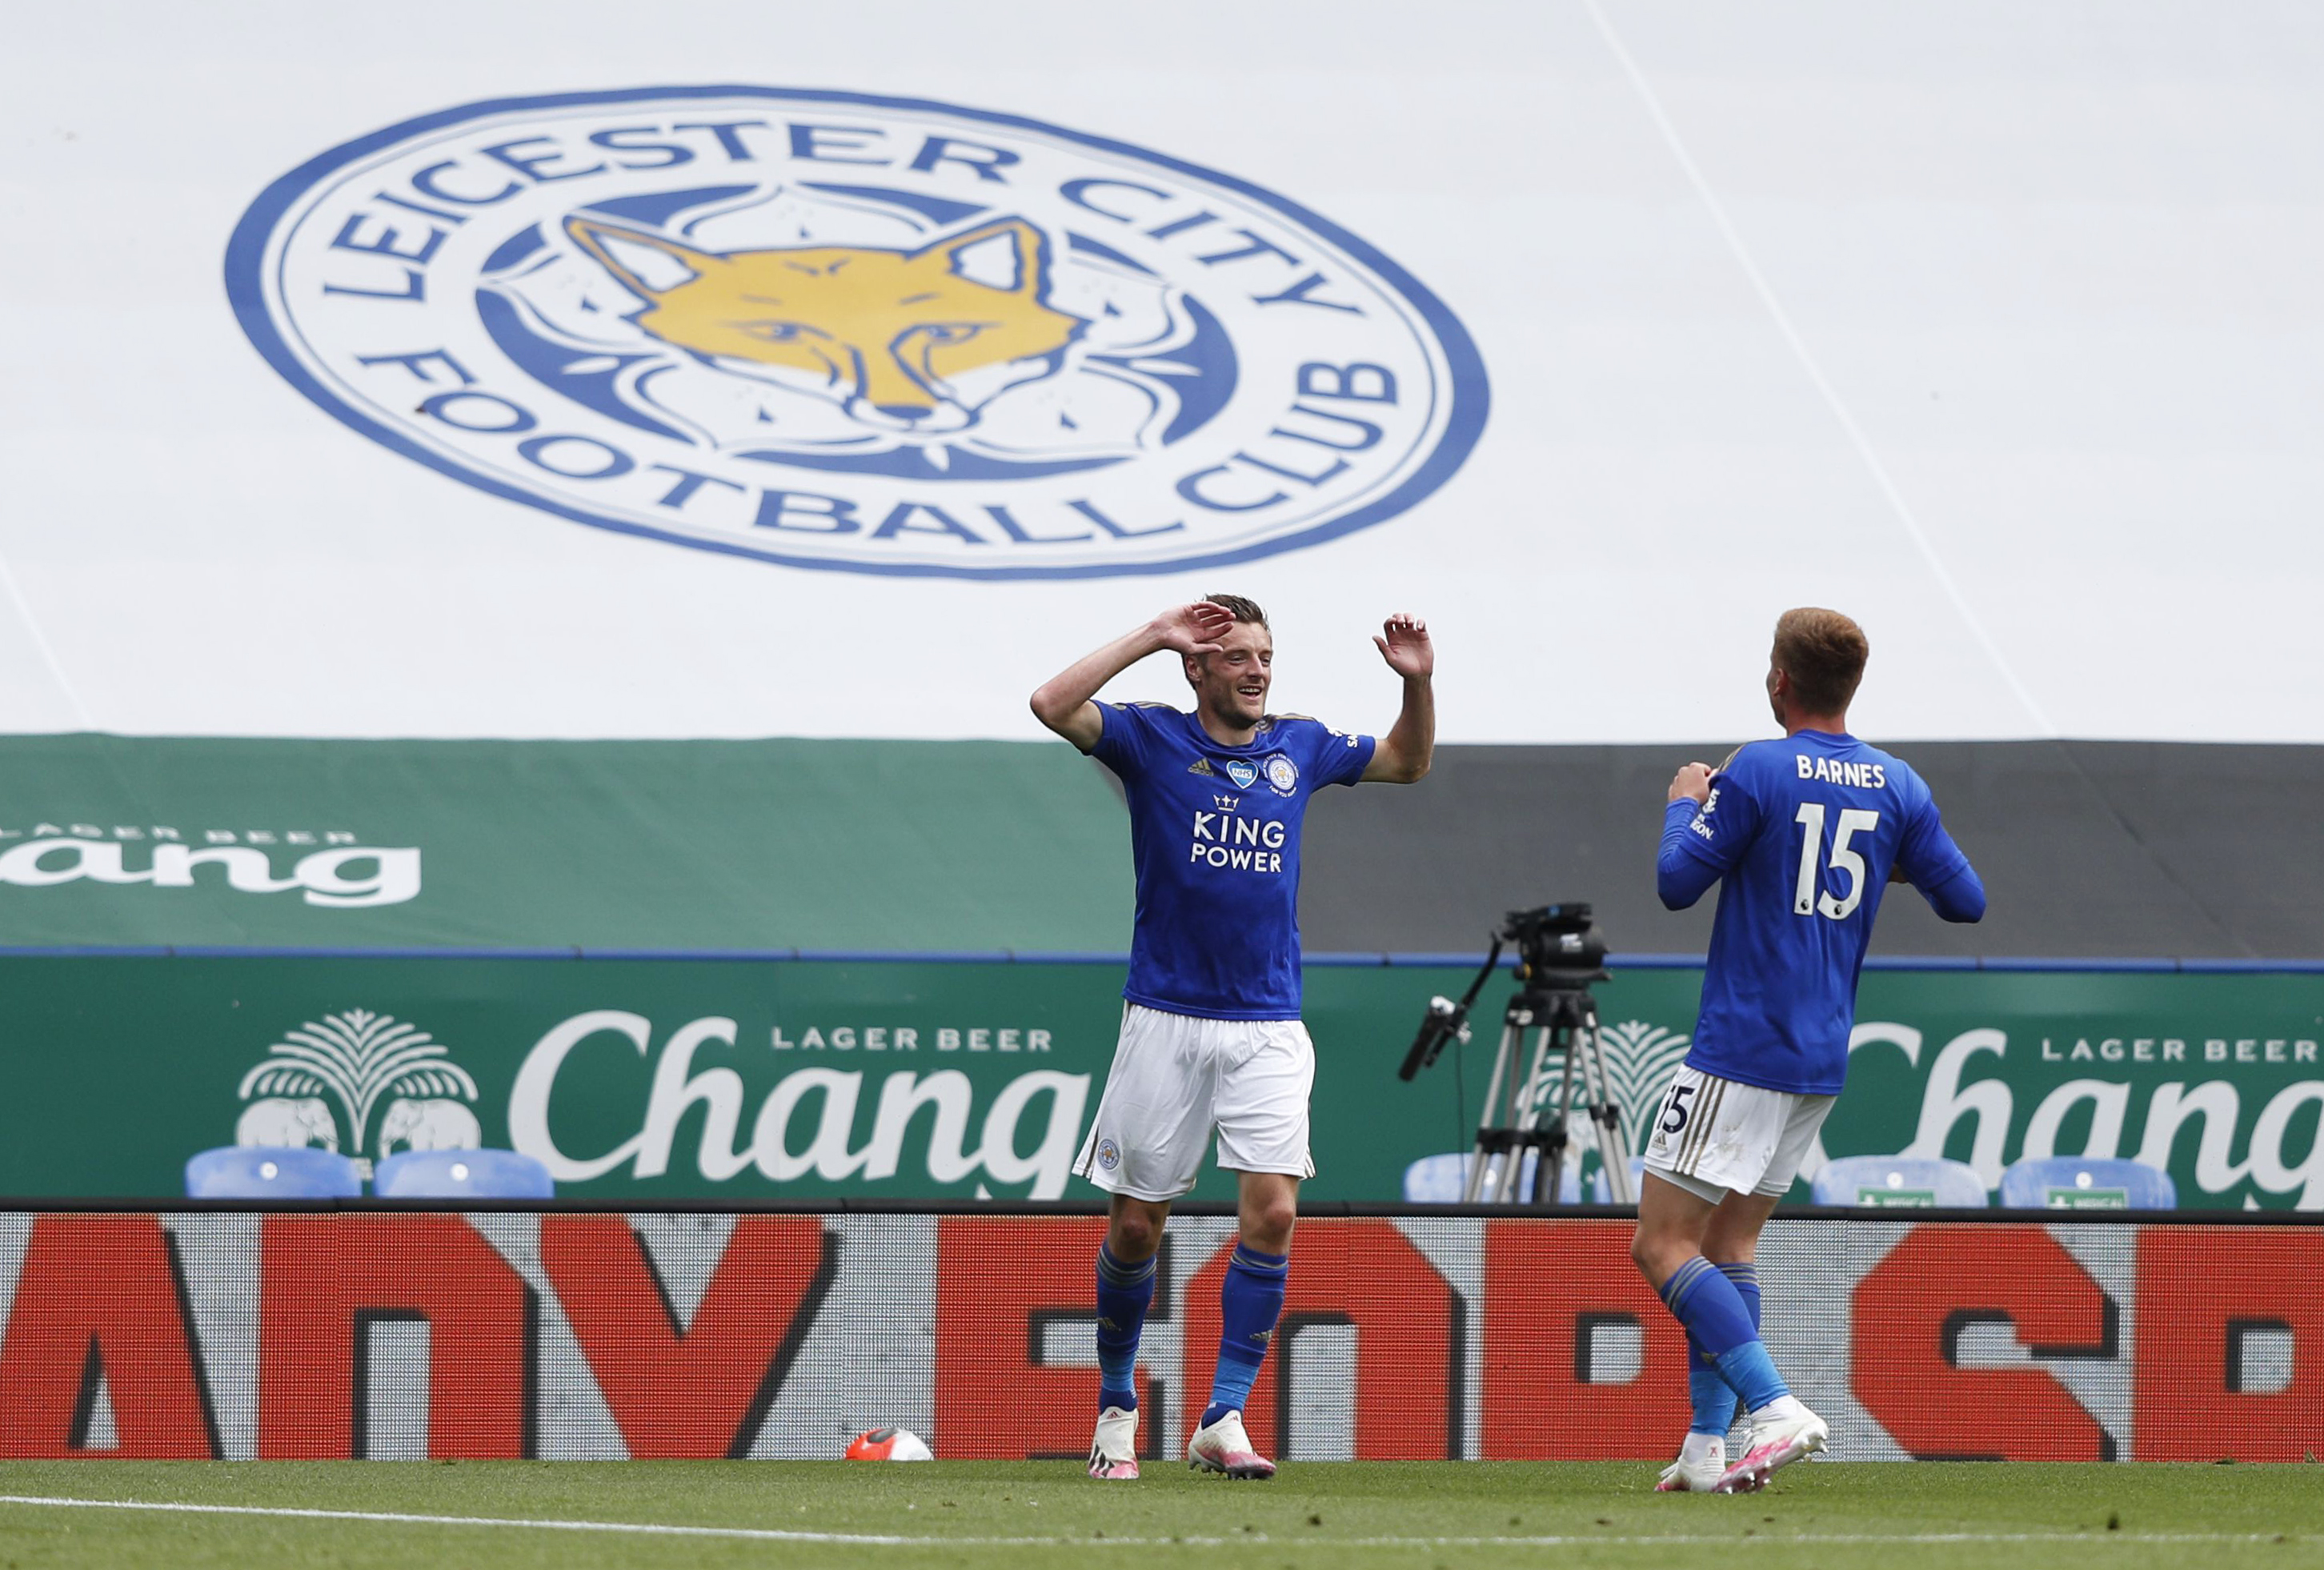 3-5-2 Leicester City Predicted Lineup Vs Arsenal (Leicester's Vardy celebrating in the photo)